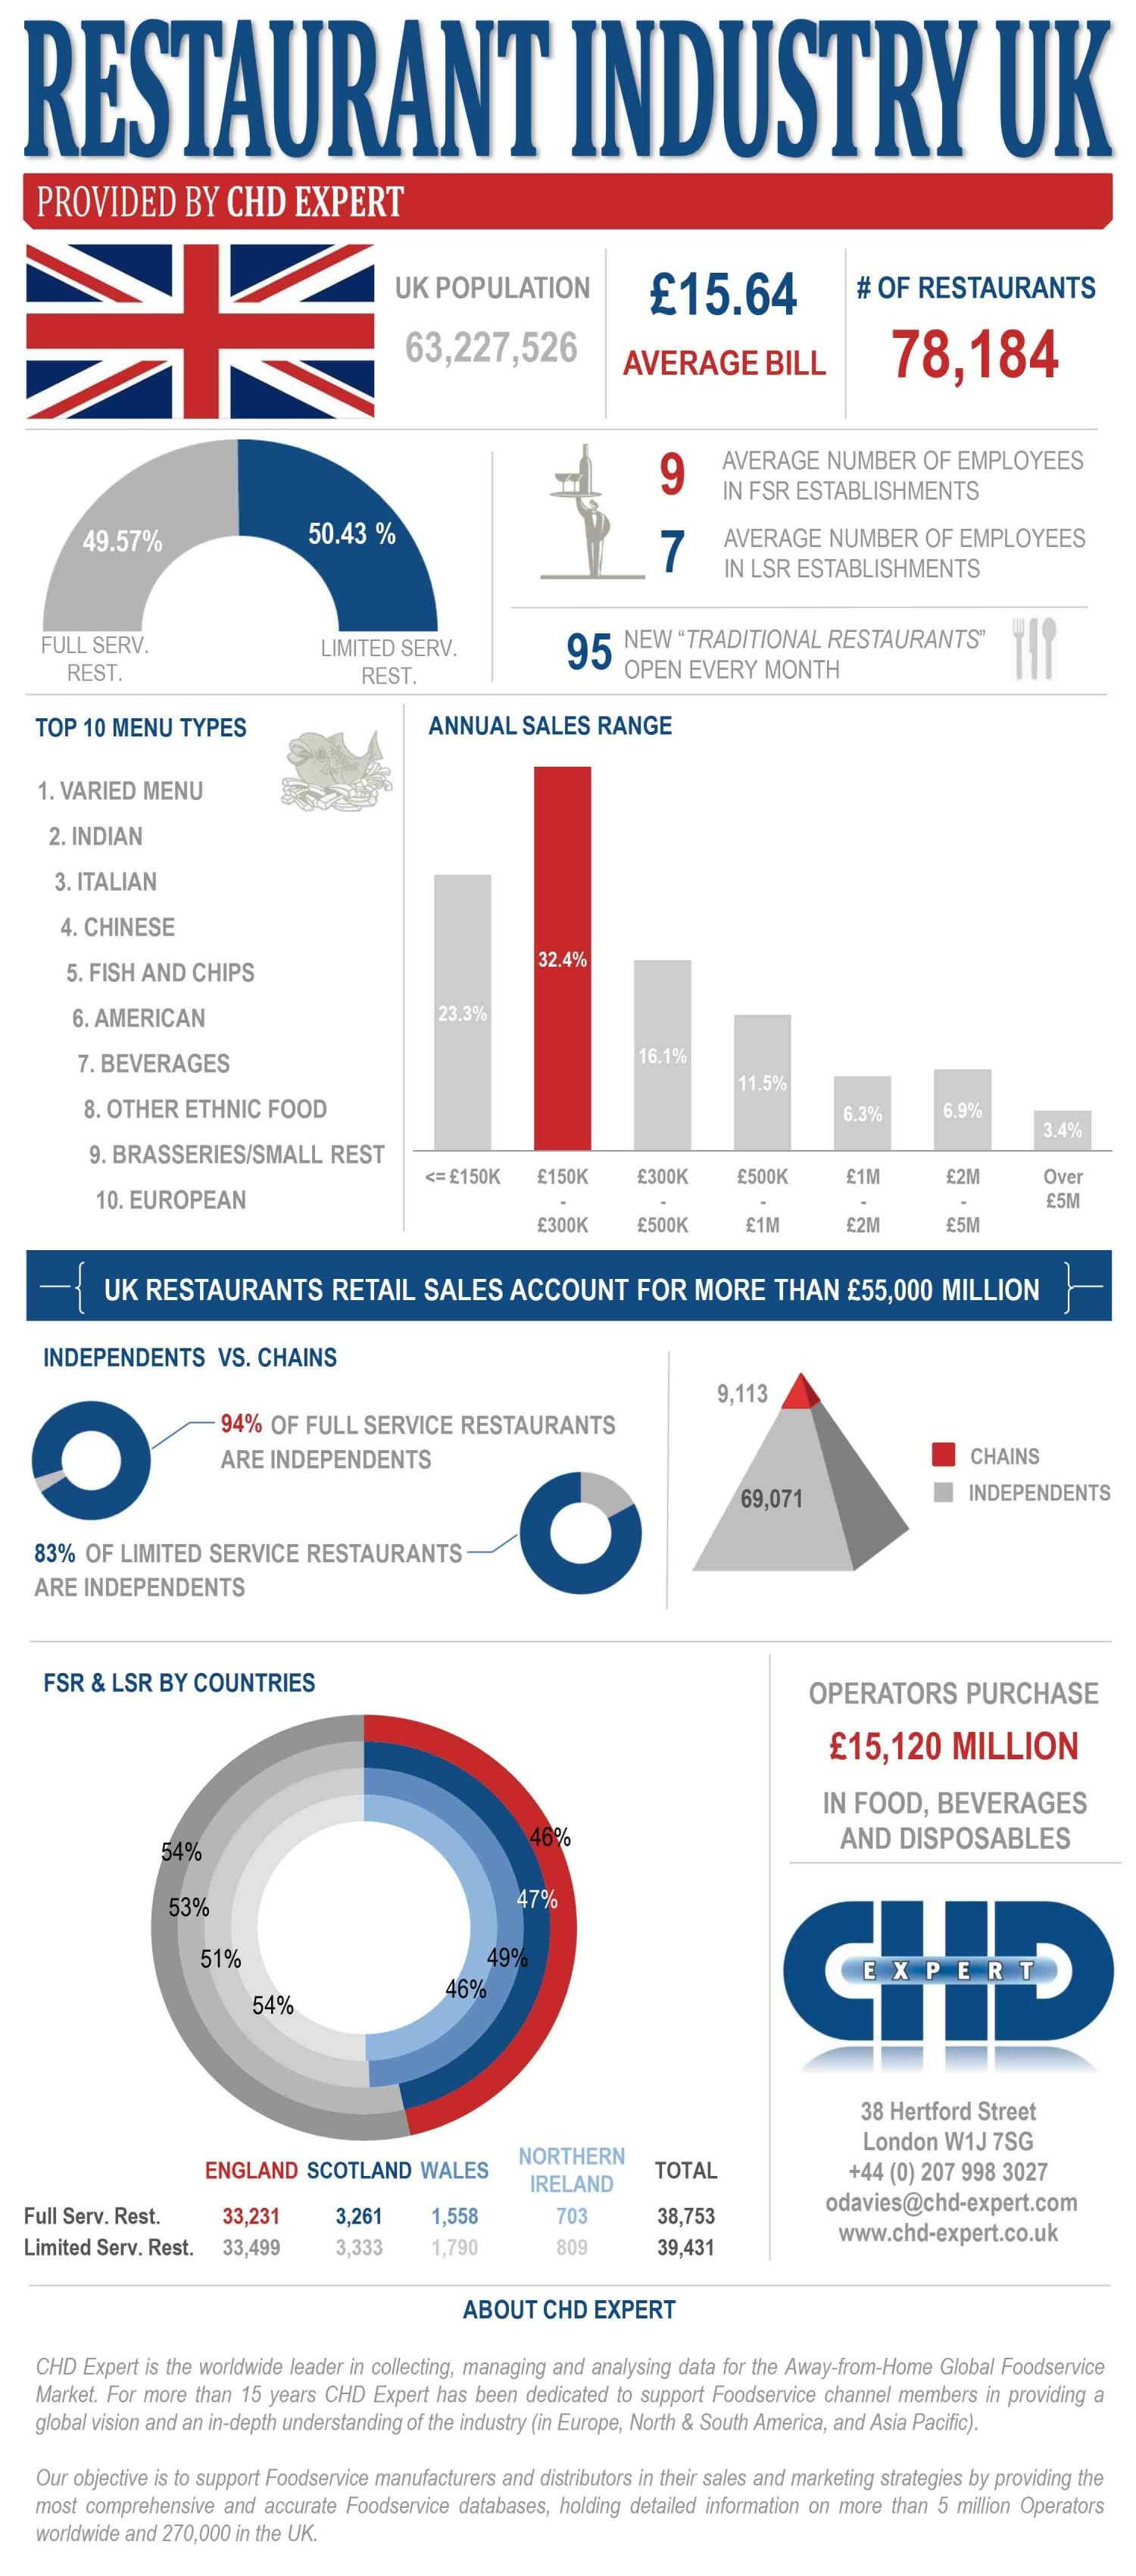 The 2014 Restaurant Industry in the UK. Infographic What